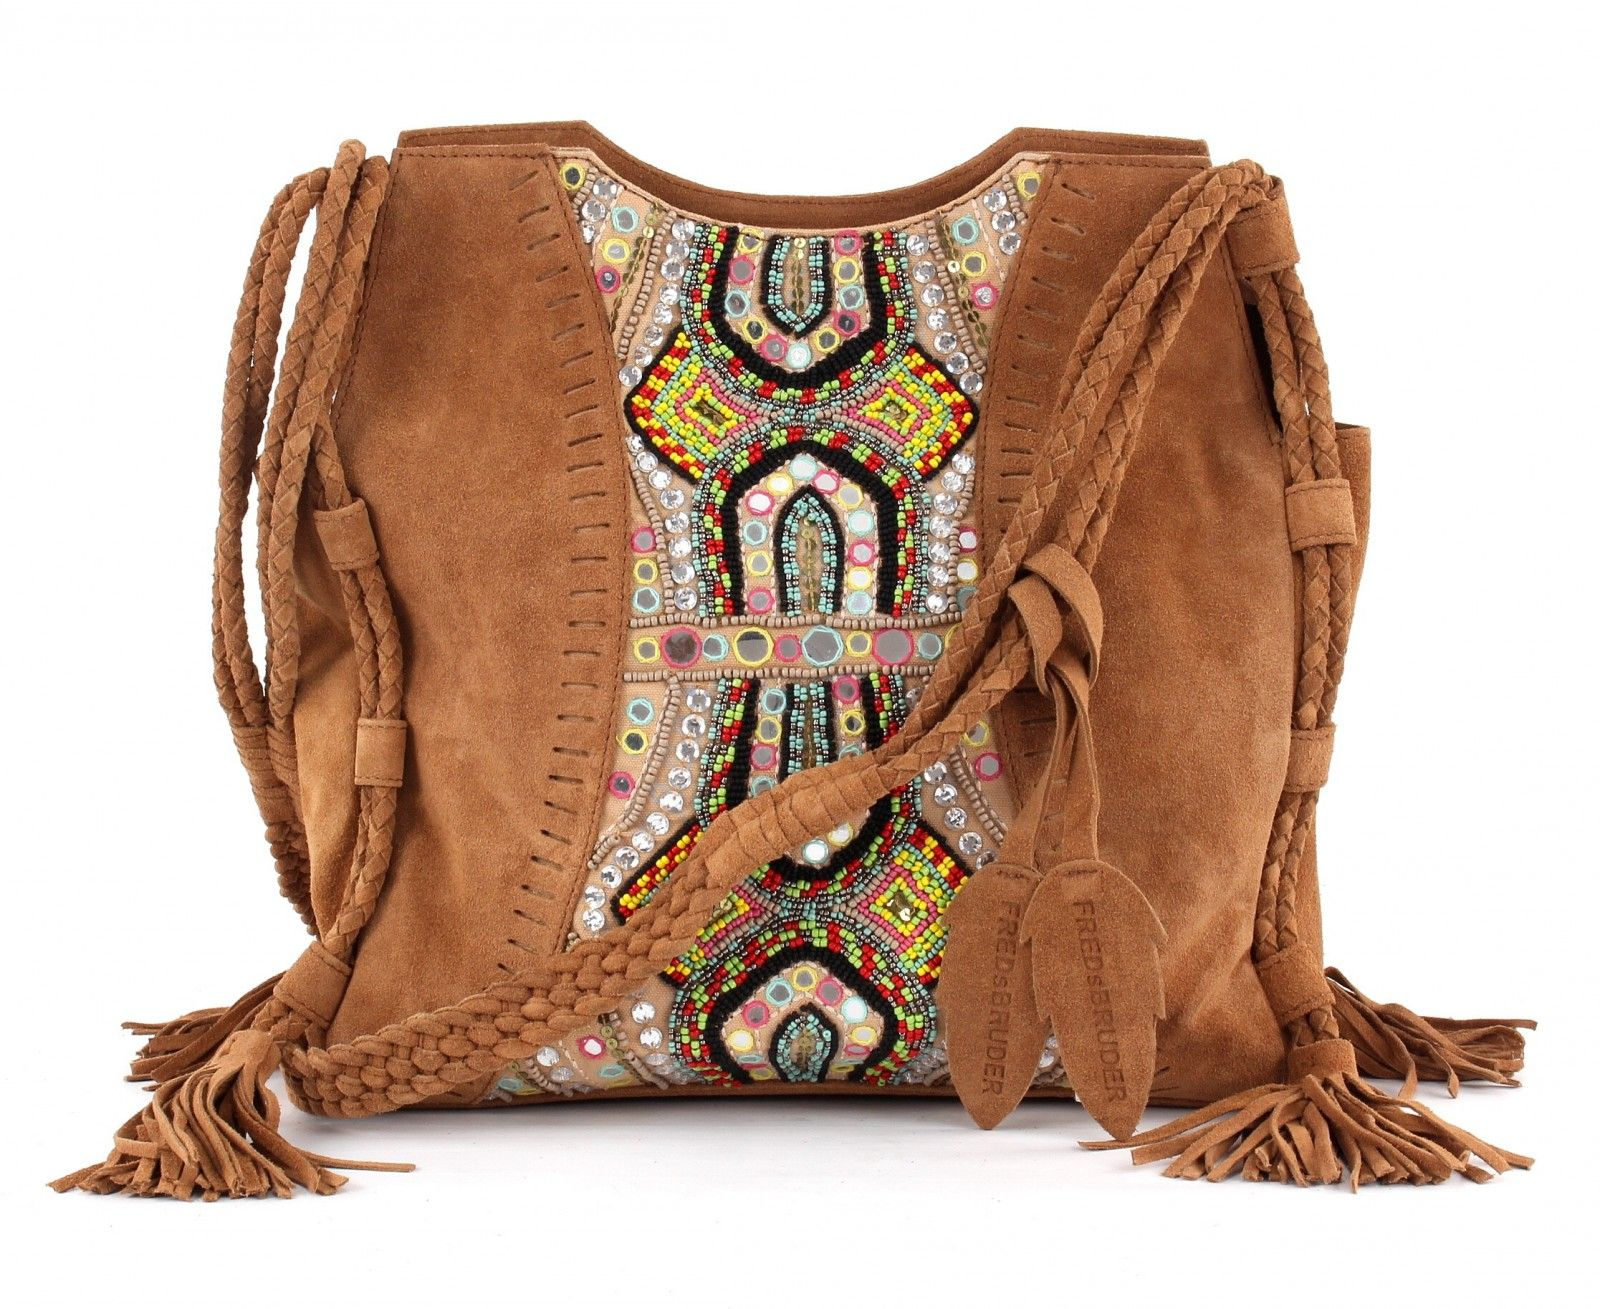 890bb340a3267  modeherz ♥  FREDsBRUDER Candy  Hippie Group  Candy Boho Dark  Camal  bags  taschen   mode